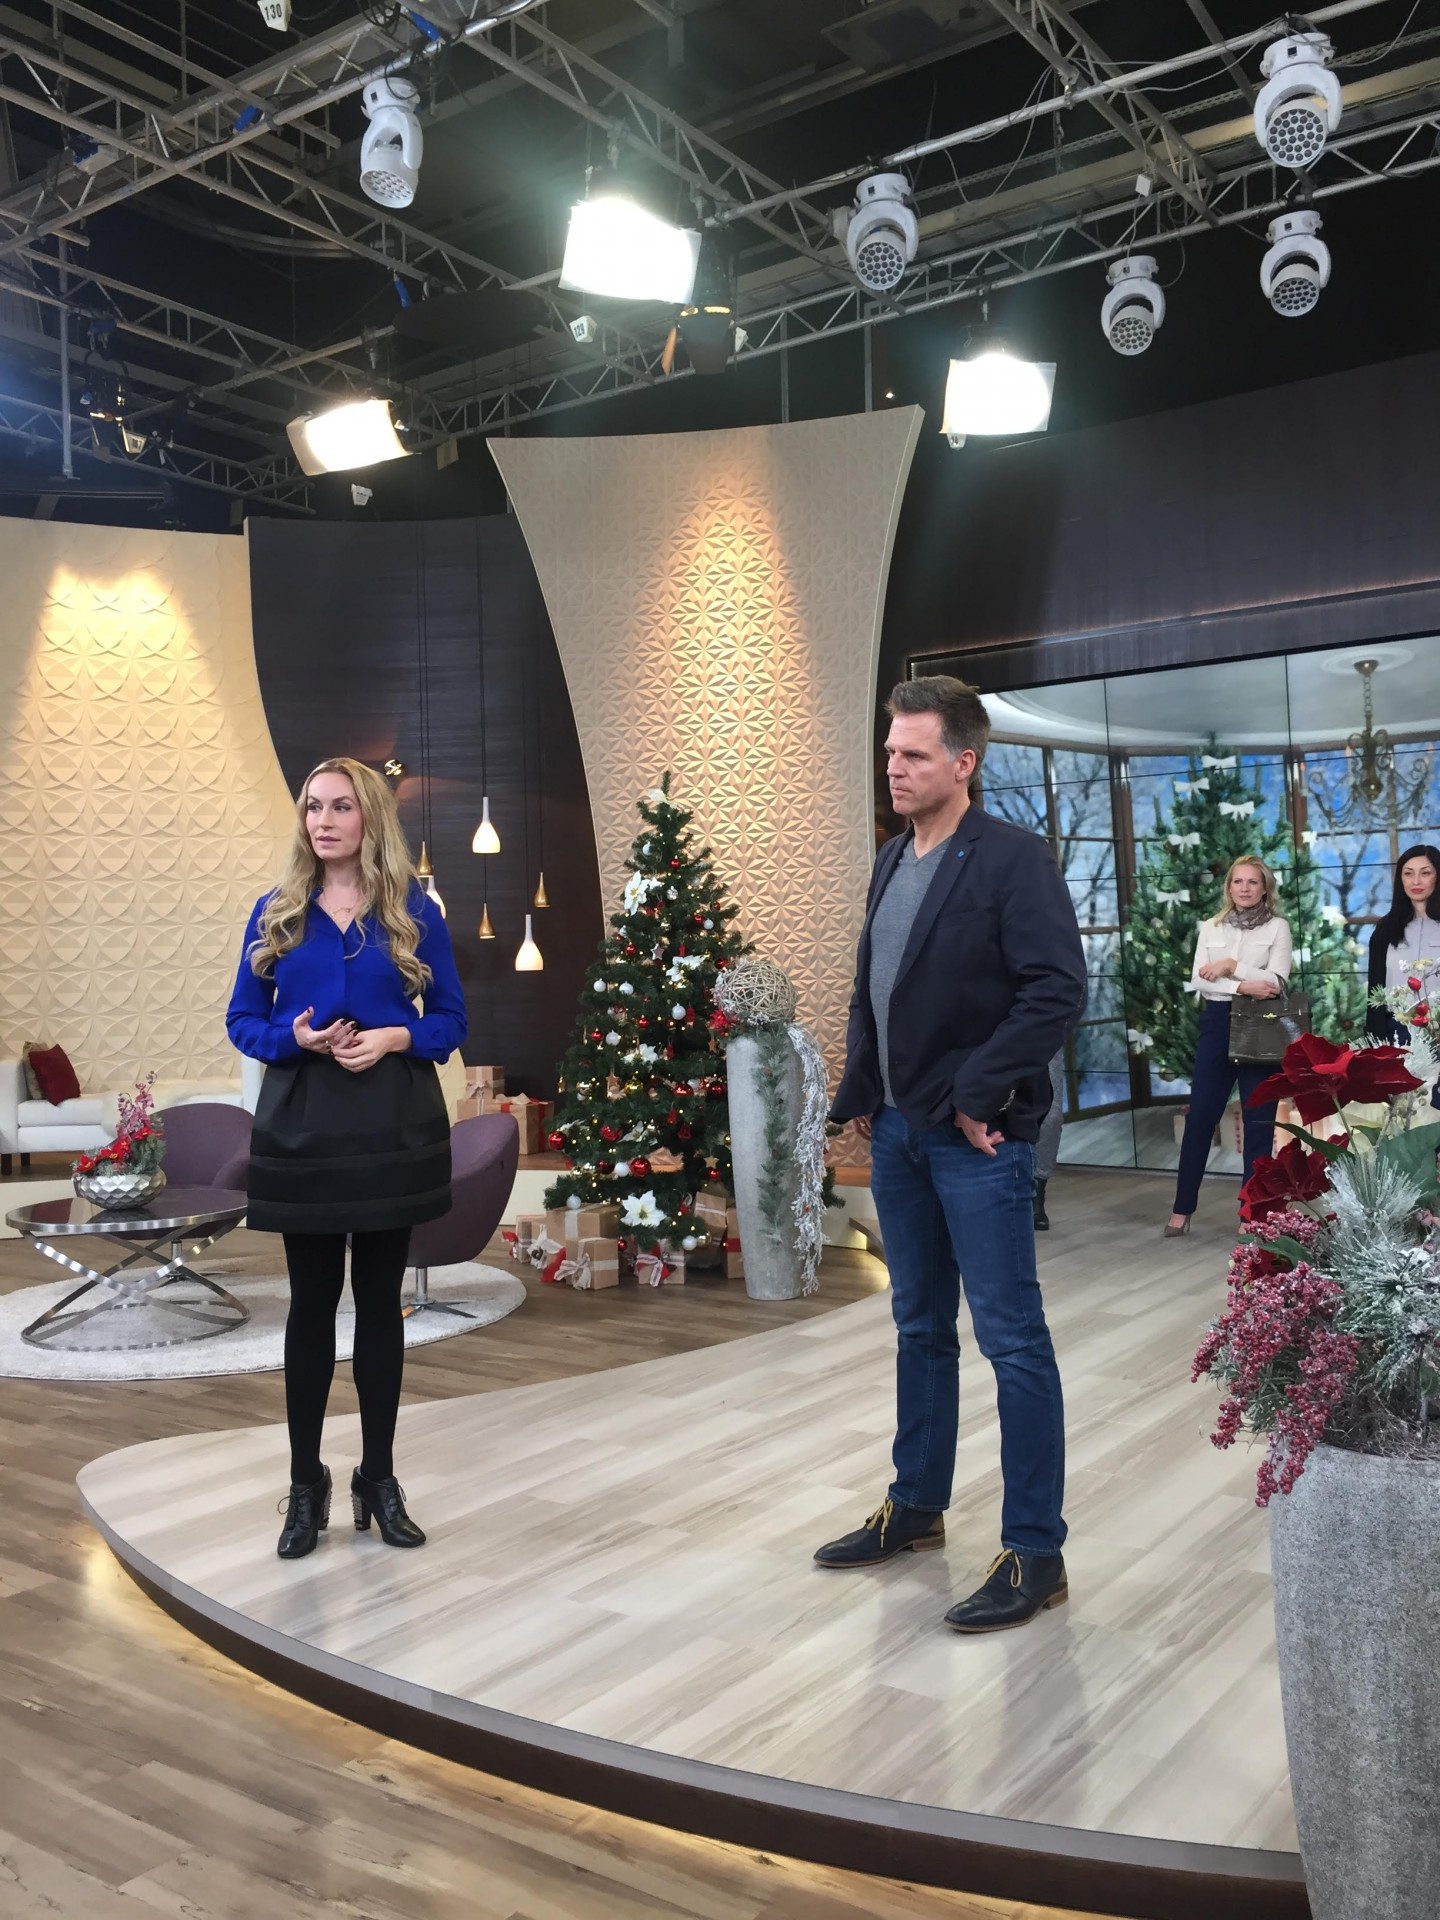 QVC behind the Scenes - Elna-Margret zu Bentheim